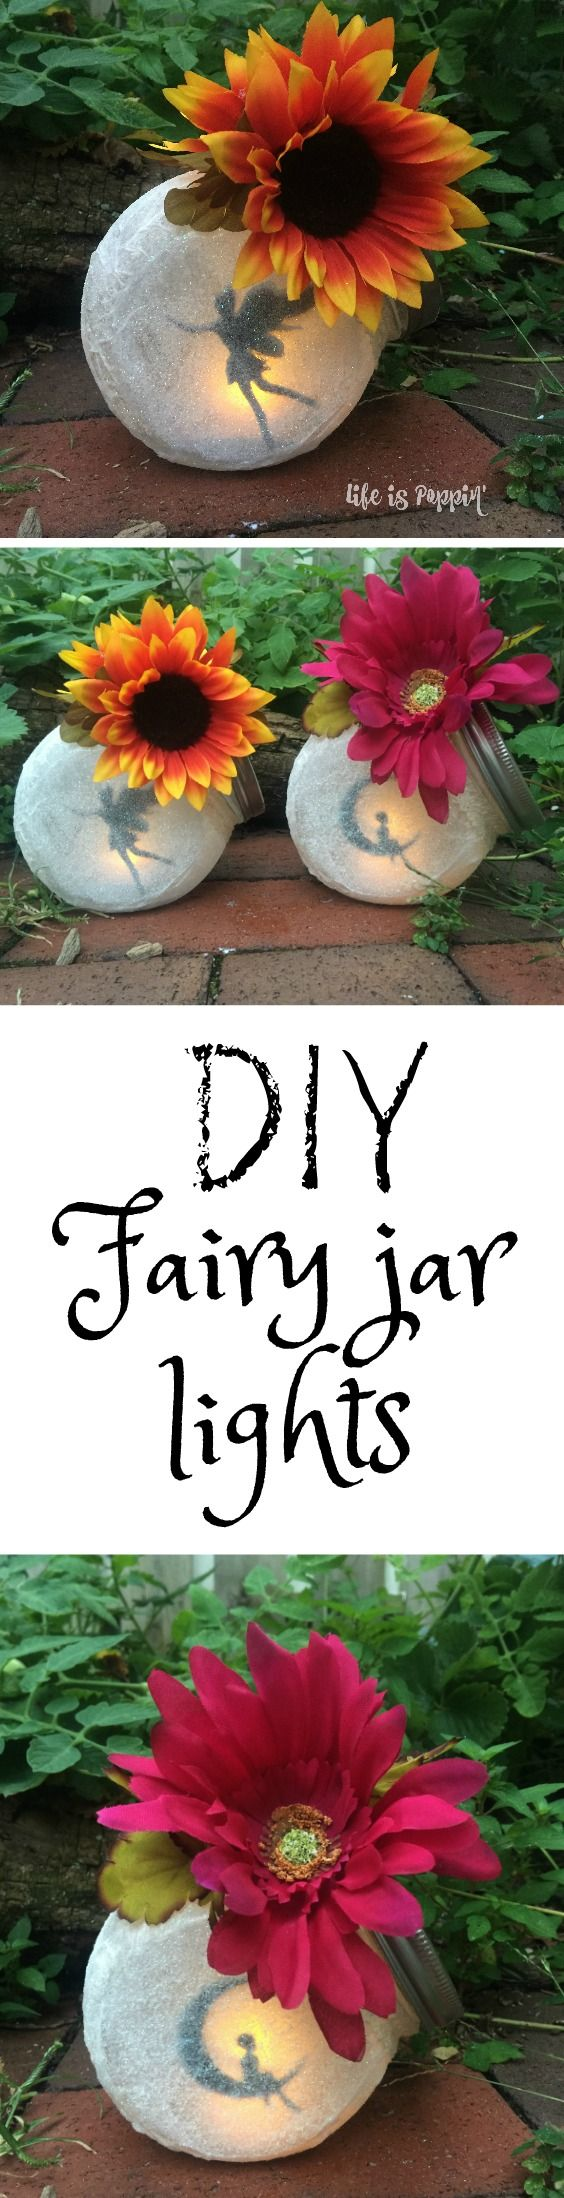 So I must admit, I am seriously in love with these Fairy in a Jar Night-Lights. They look so stunning and quite magical with a dimly lit orange and yellow light. Your kids will love displaying these beautiful jars in their rooms and they will comfort them at night.